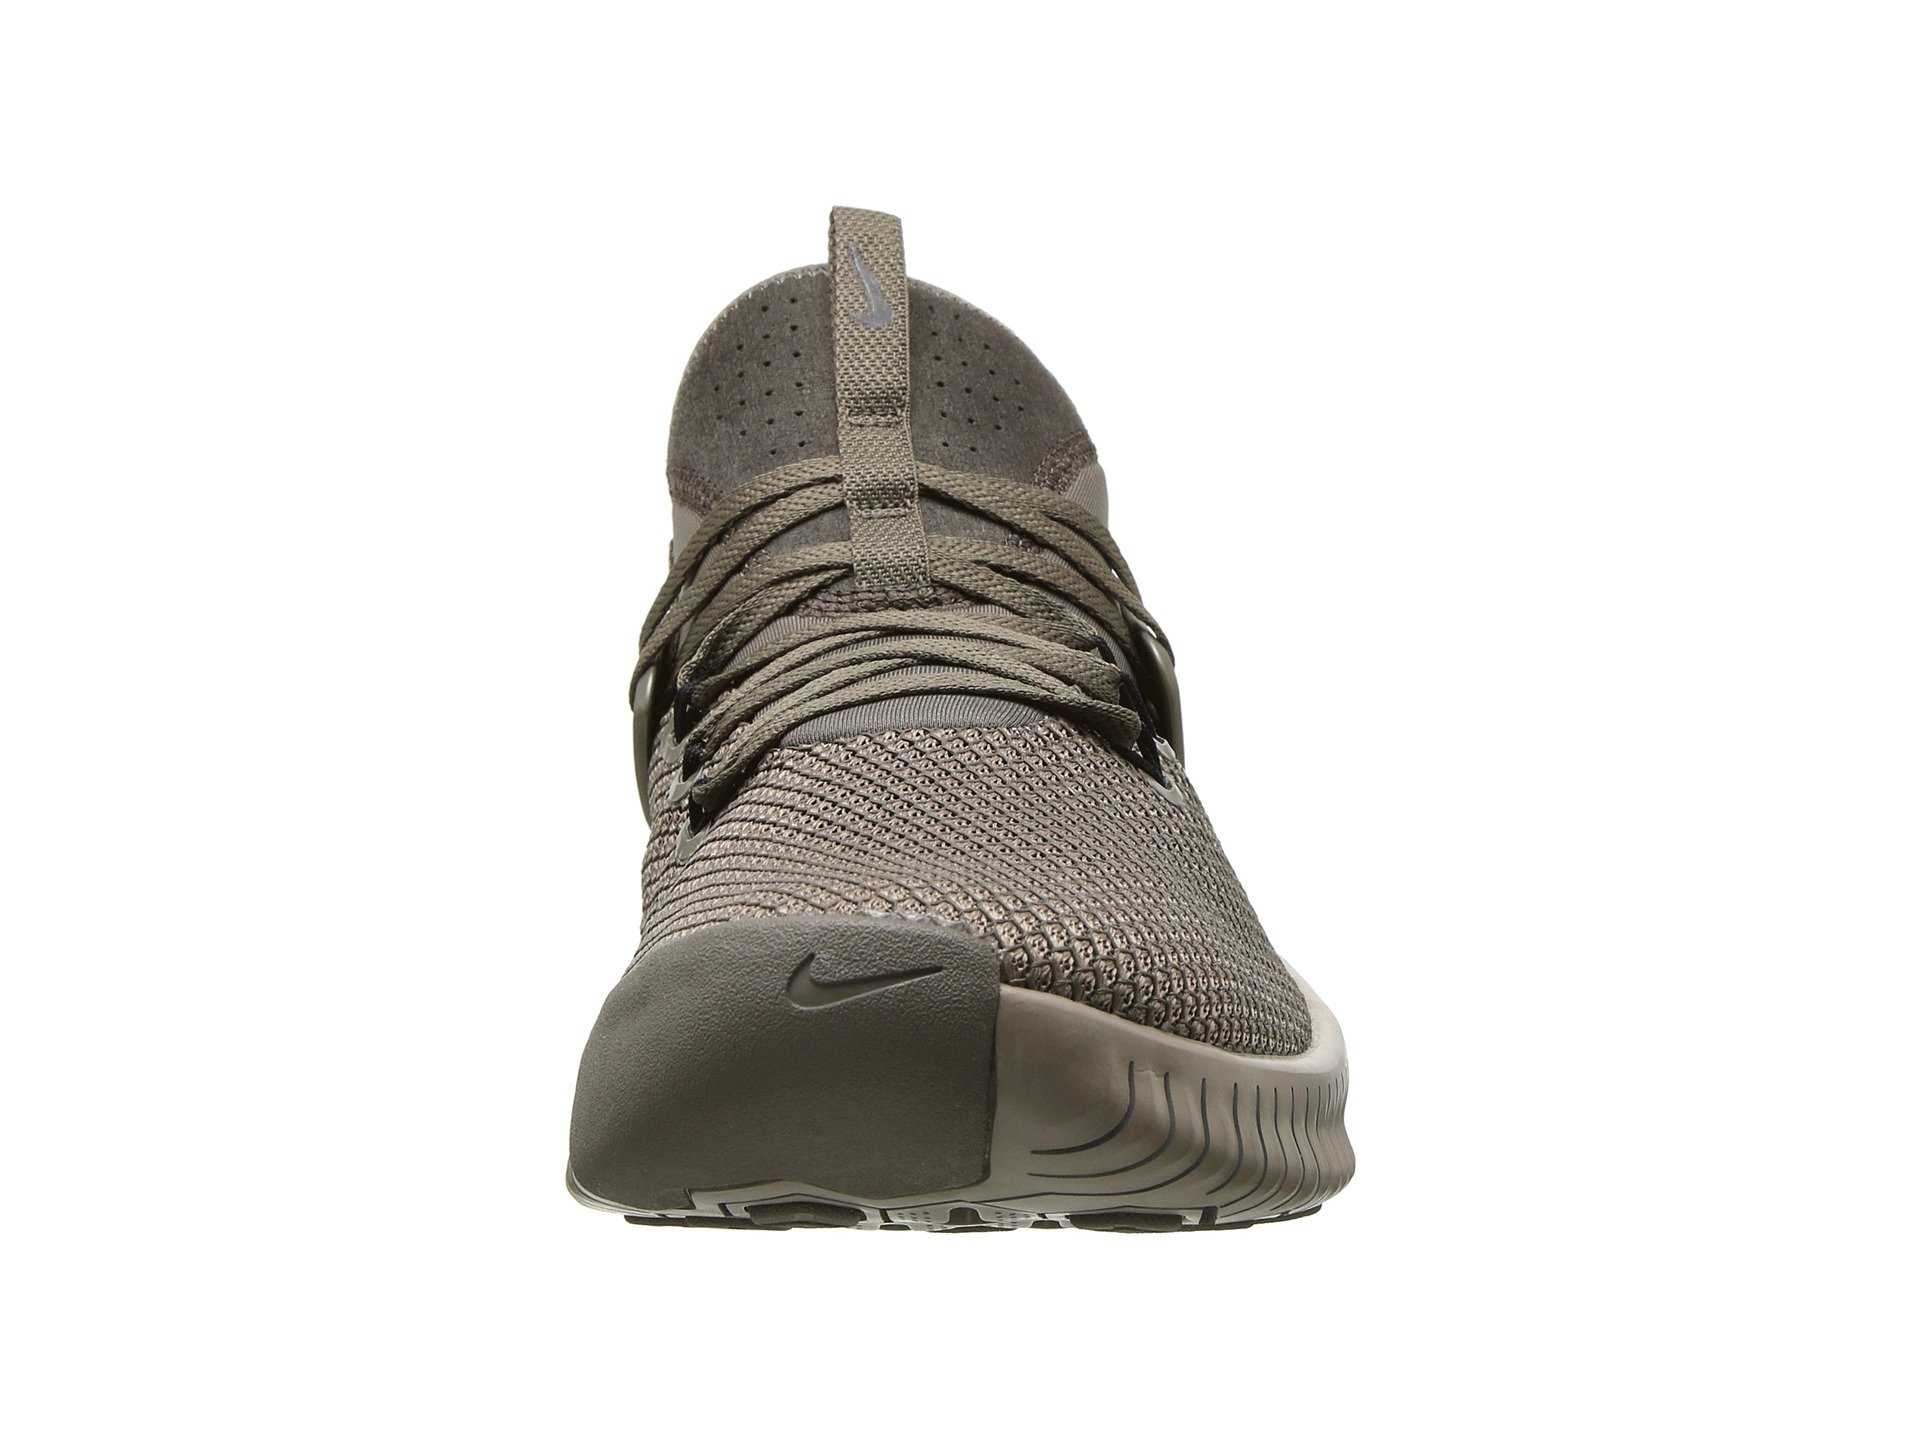 a009928a711 yeezy air max. This could be easily ascertained by trying the shoes and  walking around or performing mock exercises at the footwear showroom.